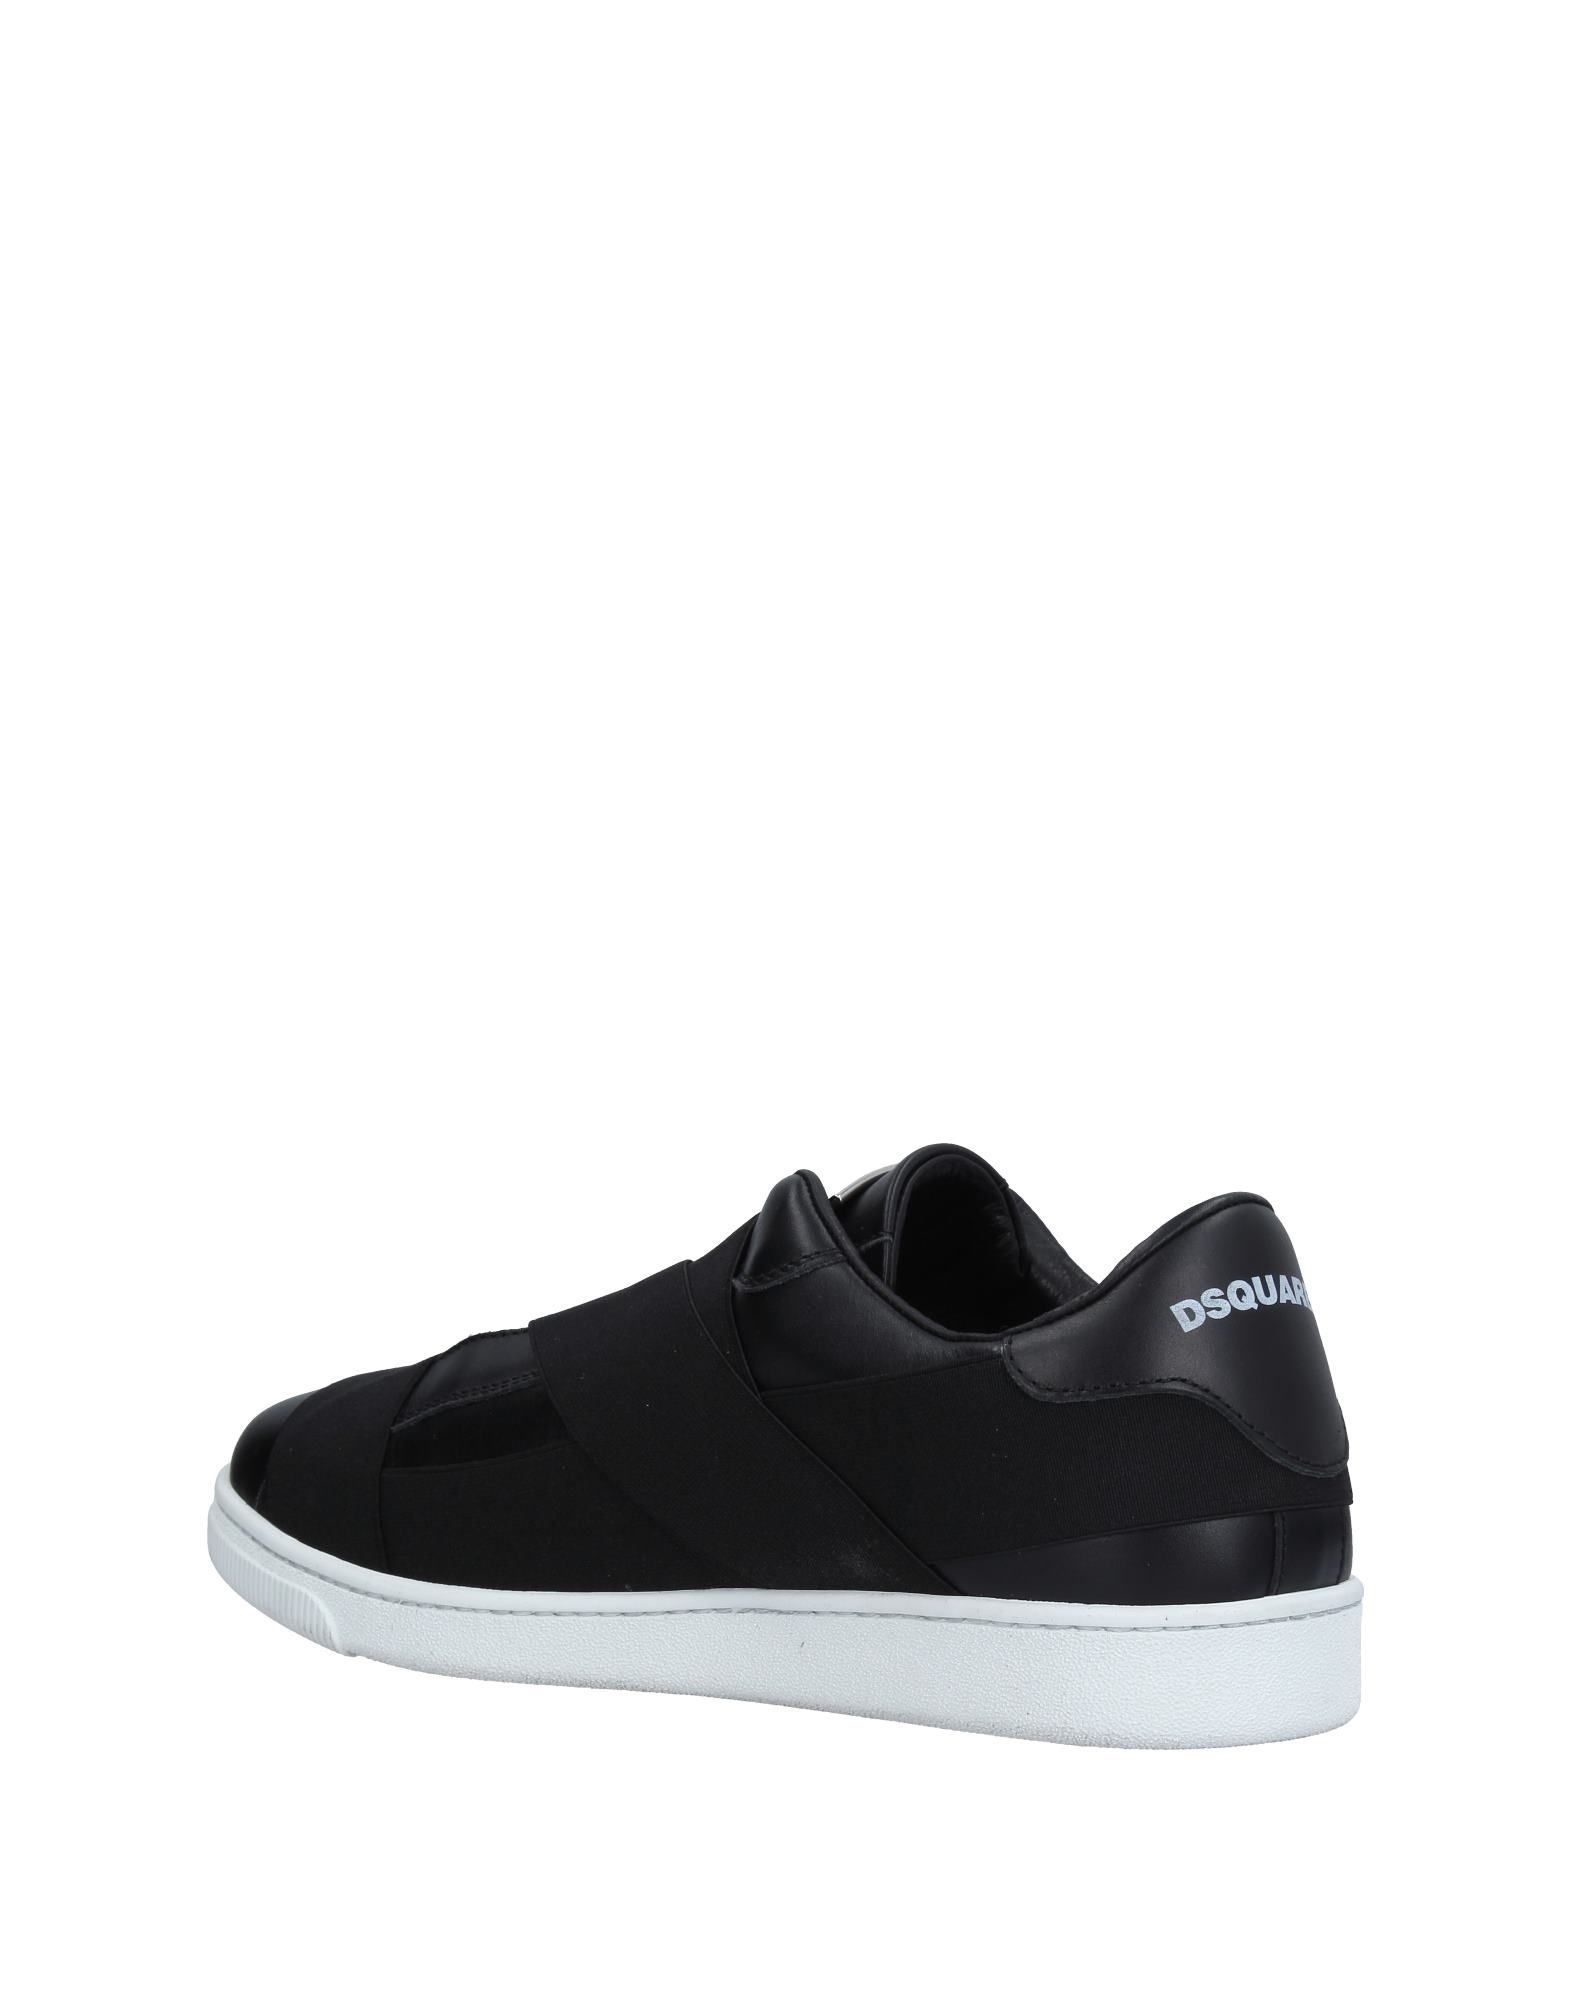 Dsquared2 Sneakers Sneakers Dsquared2 Herren  11213015SR fc710a